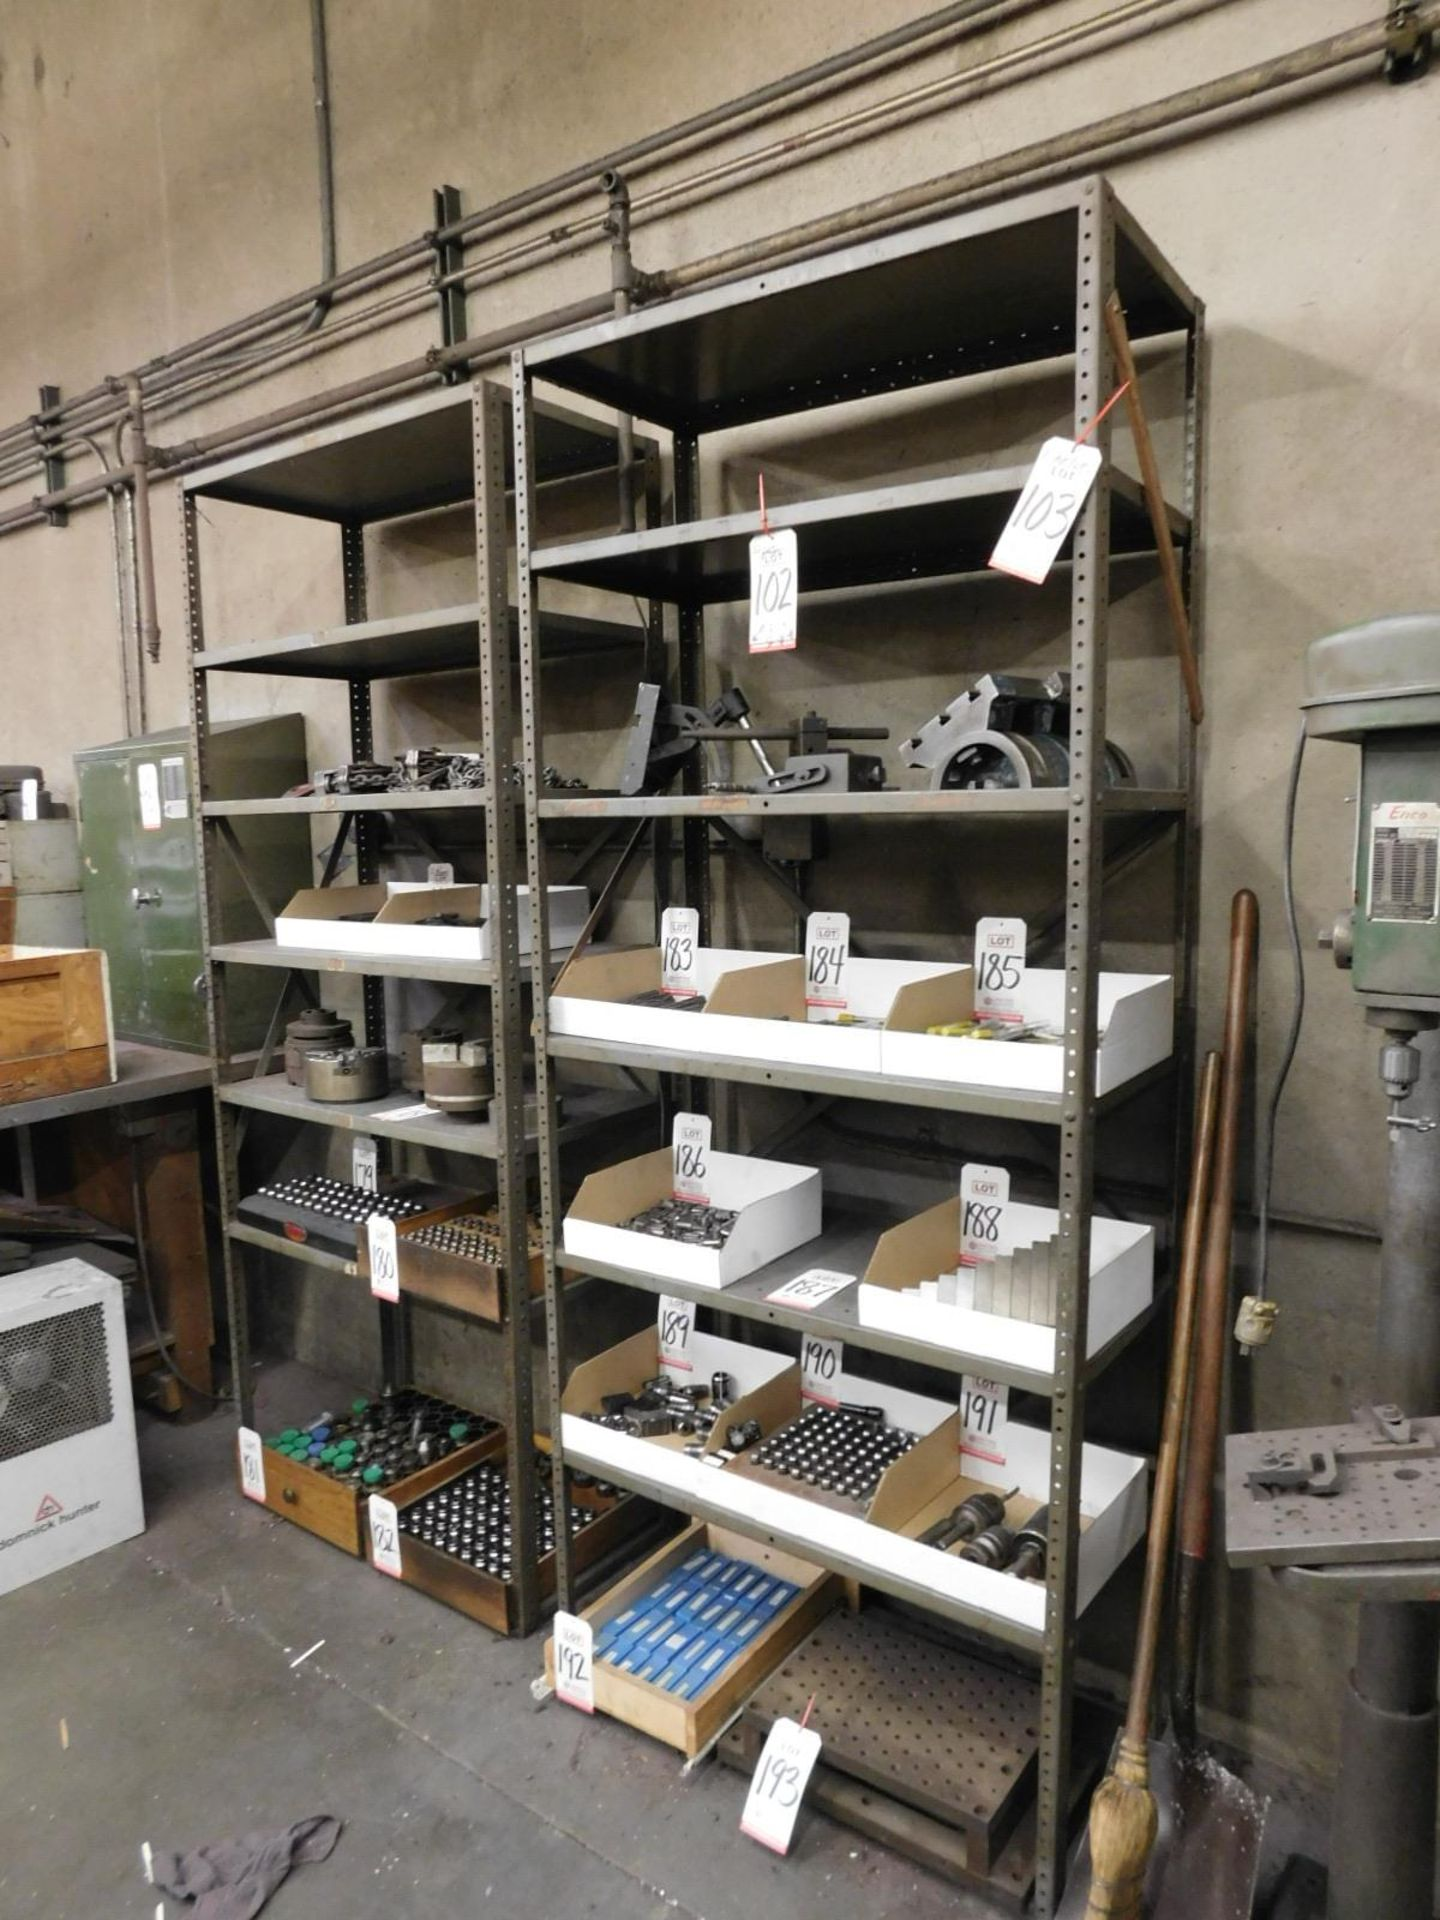 "LOT - (2) STEEL SHELF UNITS, 3' X 18"" X 87"", CONTENTS NOT INCLUDED"